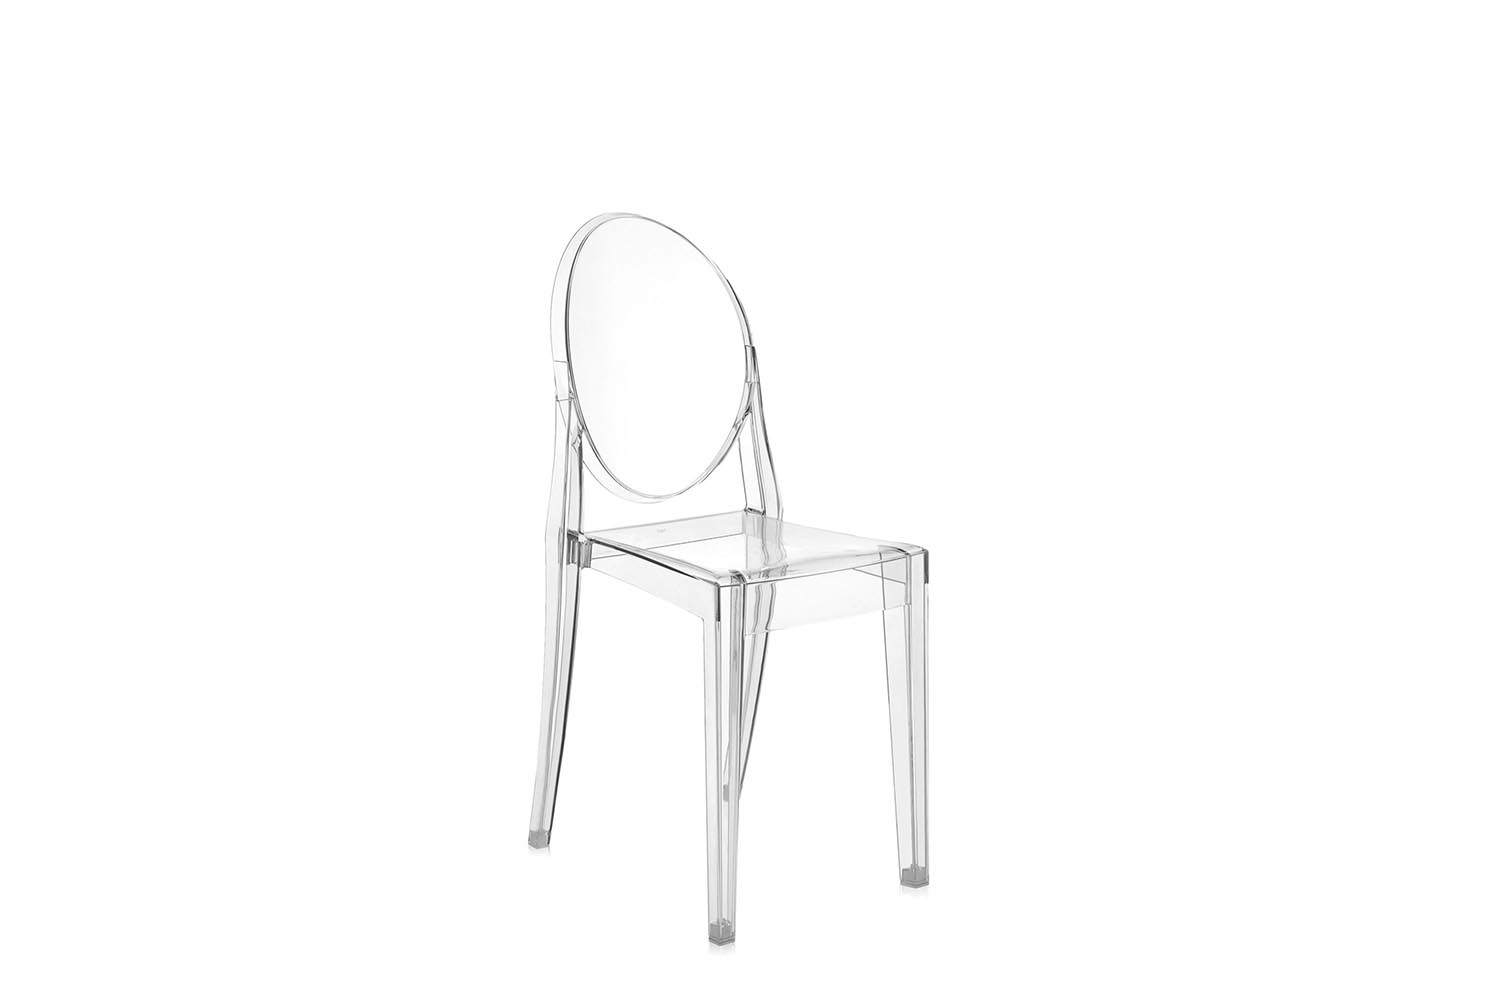 victoria ghost chair outdoor with canopy by philippe starck for kartell space furniture